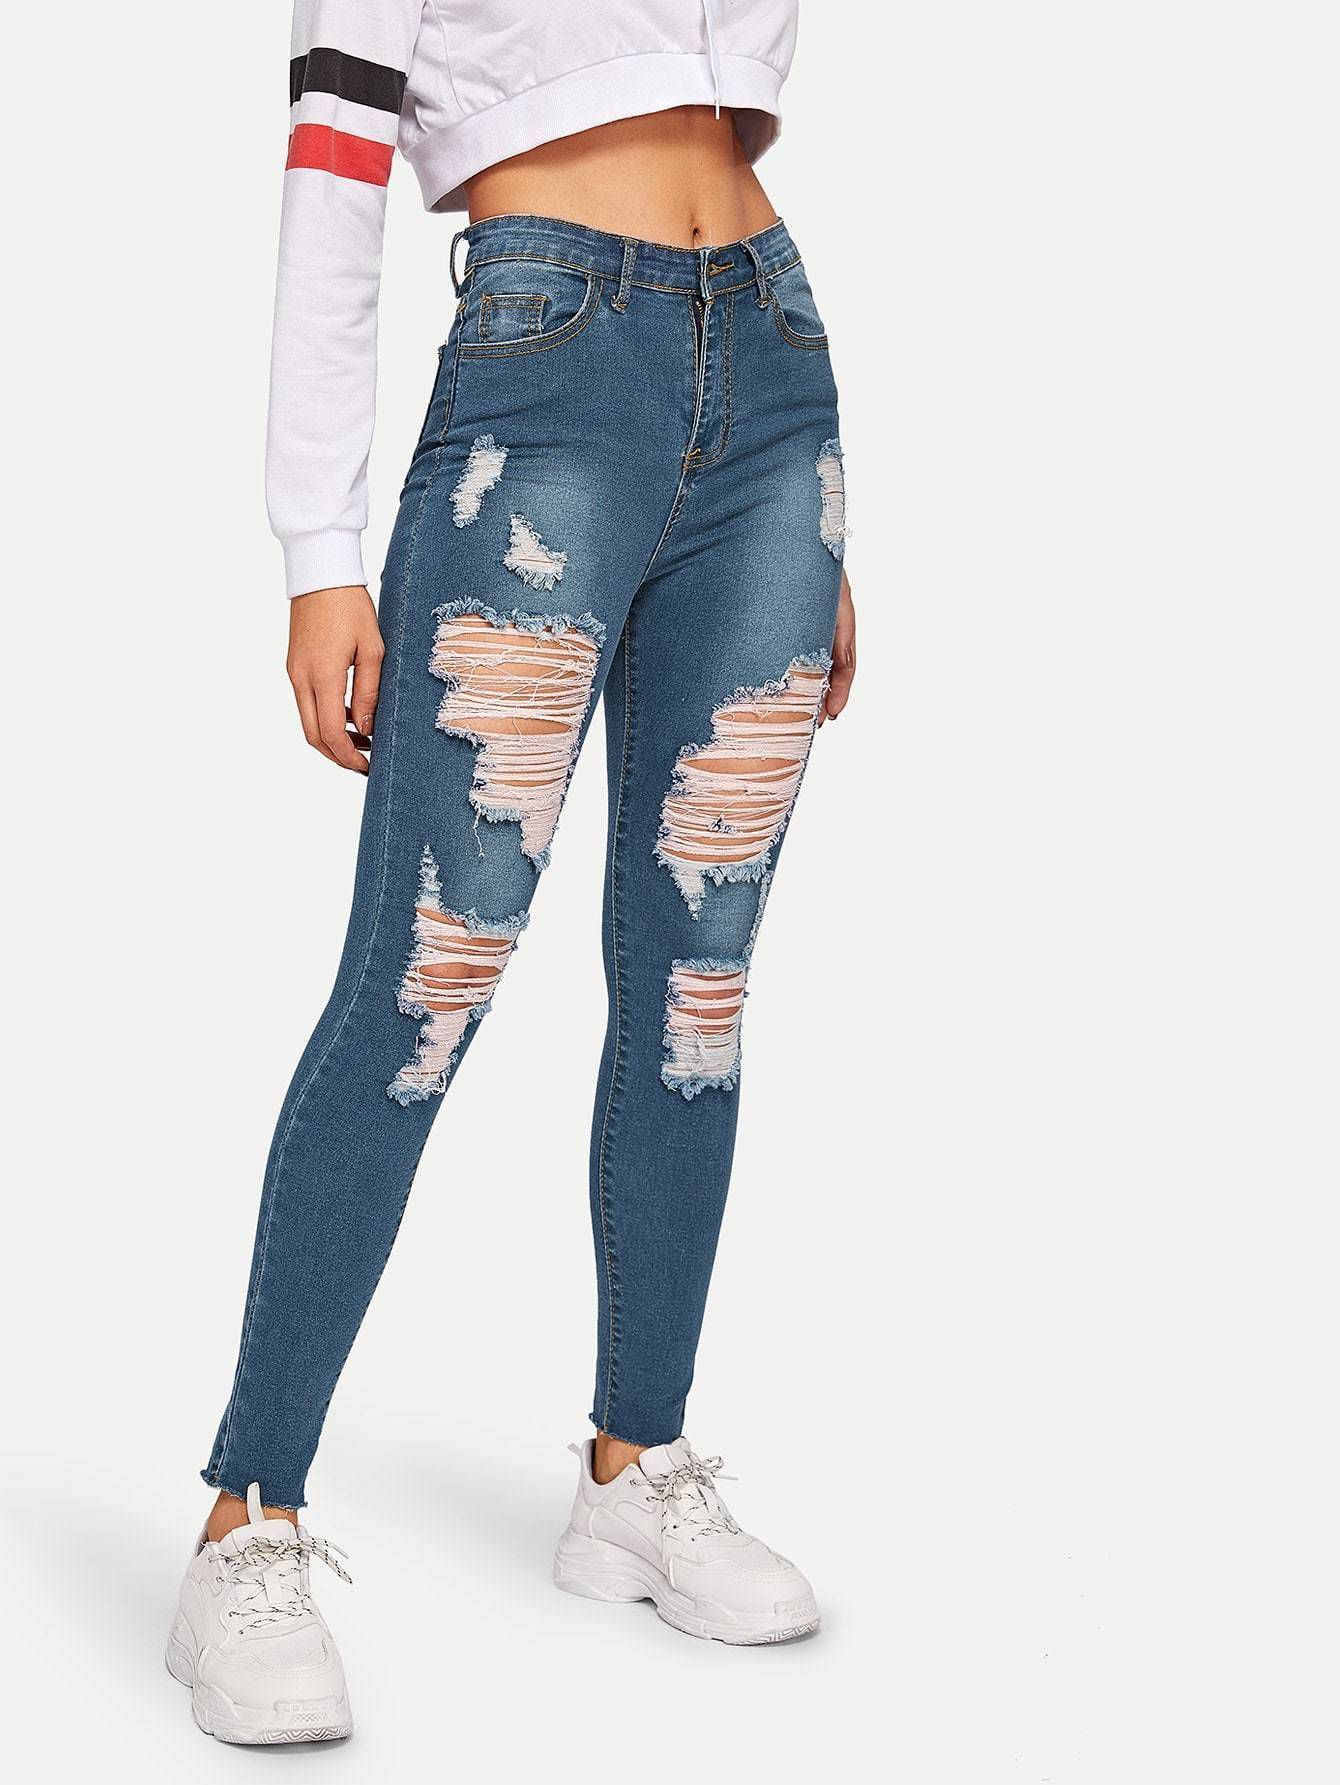 Angustiado Raw Dobladillo De Los Pantalones Vaqueros Flacos Marvy Bae Cute Ripped Jeans Jeans Outfit Casual Ripped Jeans Outfit